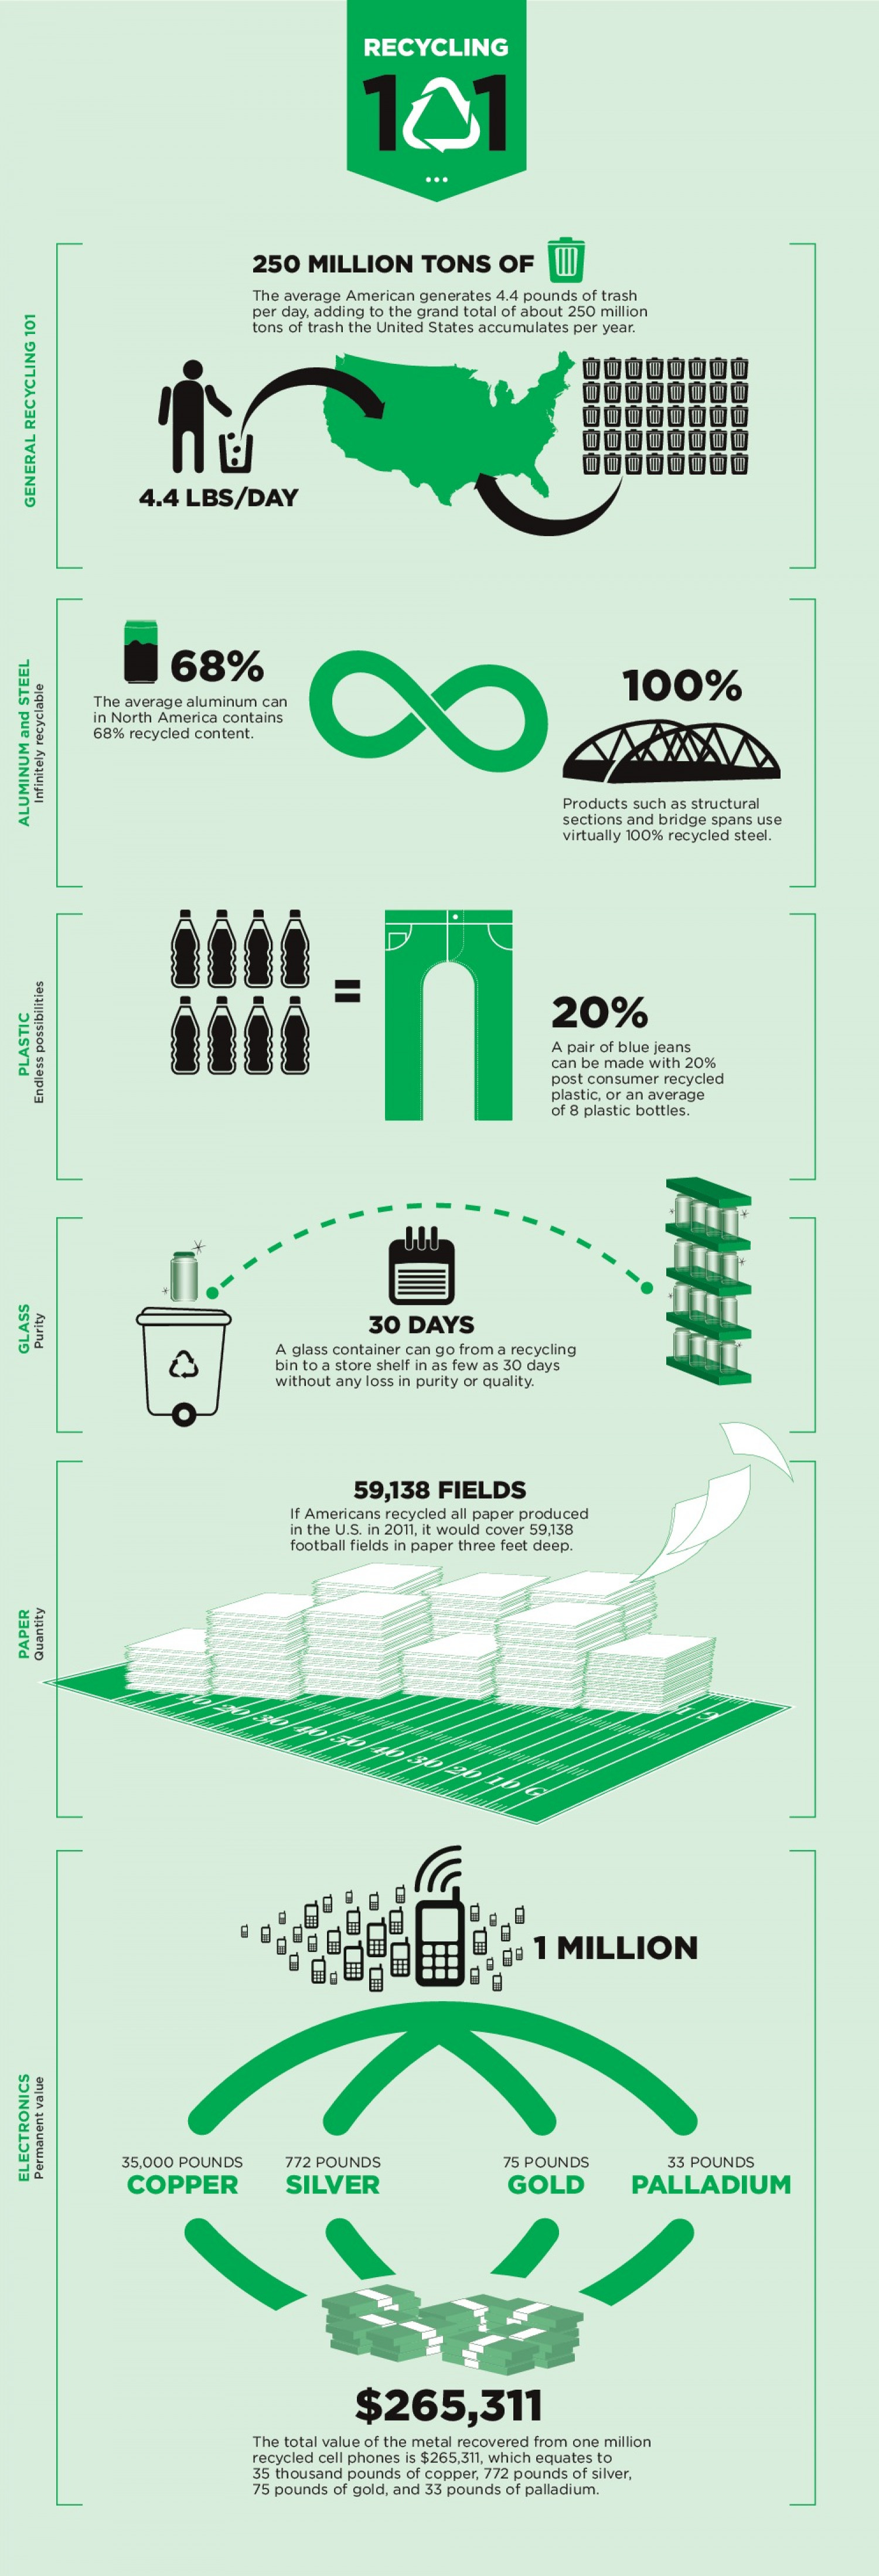 Recycling 101 Infographic